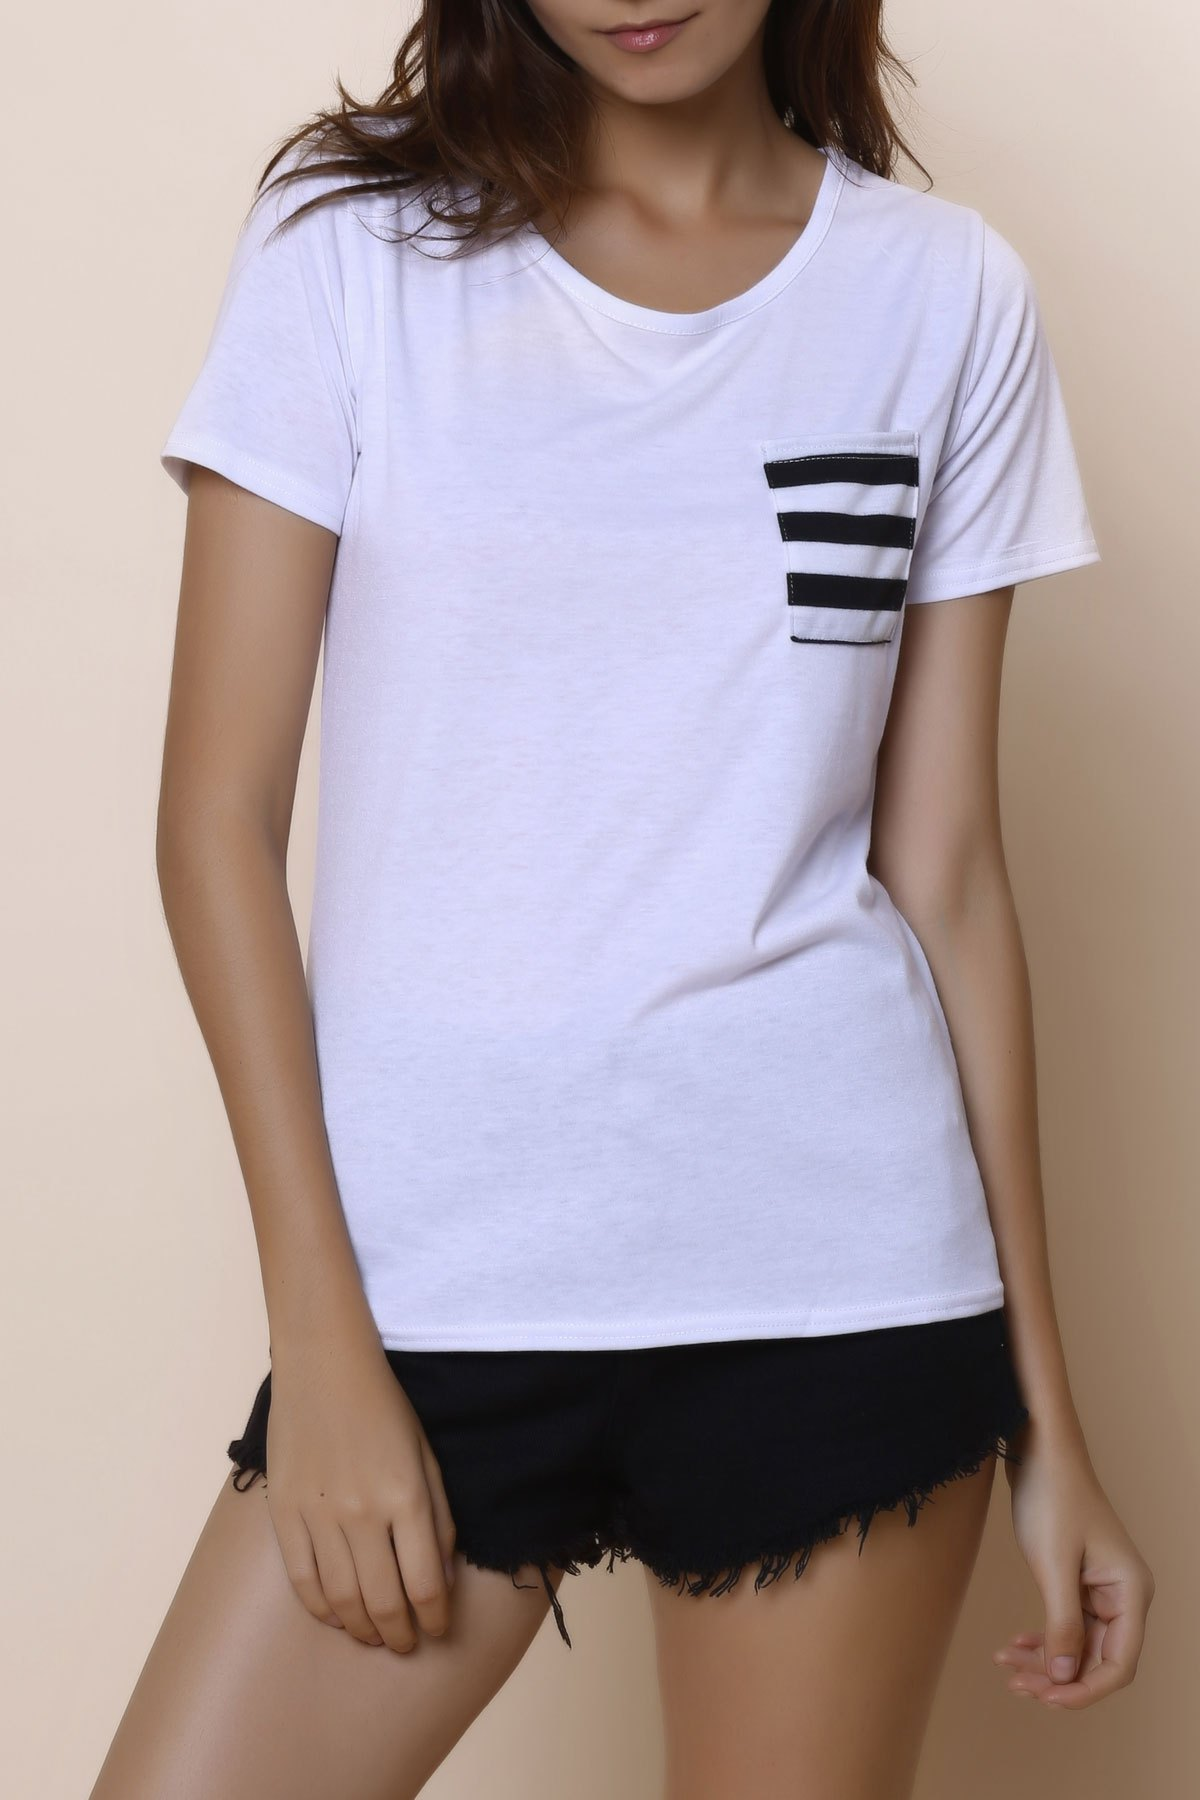 Casual Women's Scoop Neck Striped Short Sleeve Loose-Fitting T-Shirt